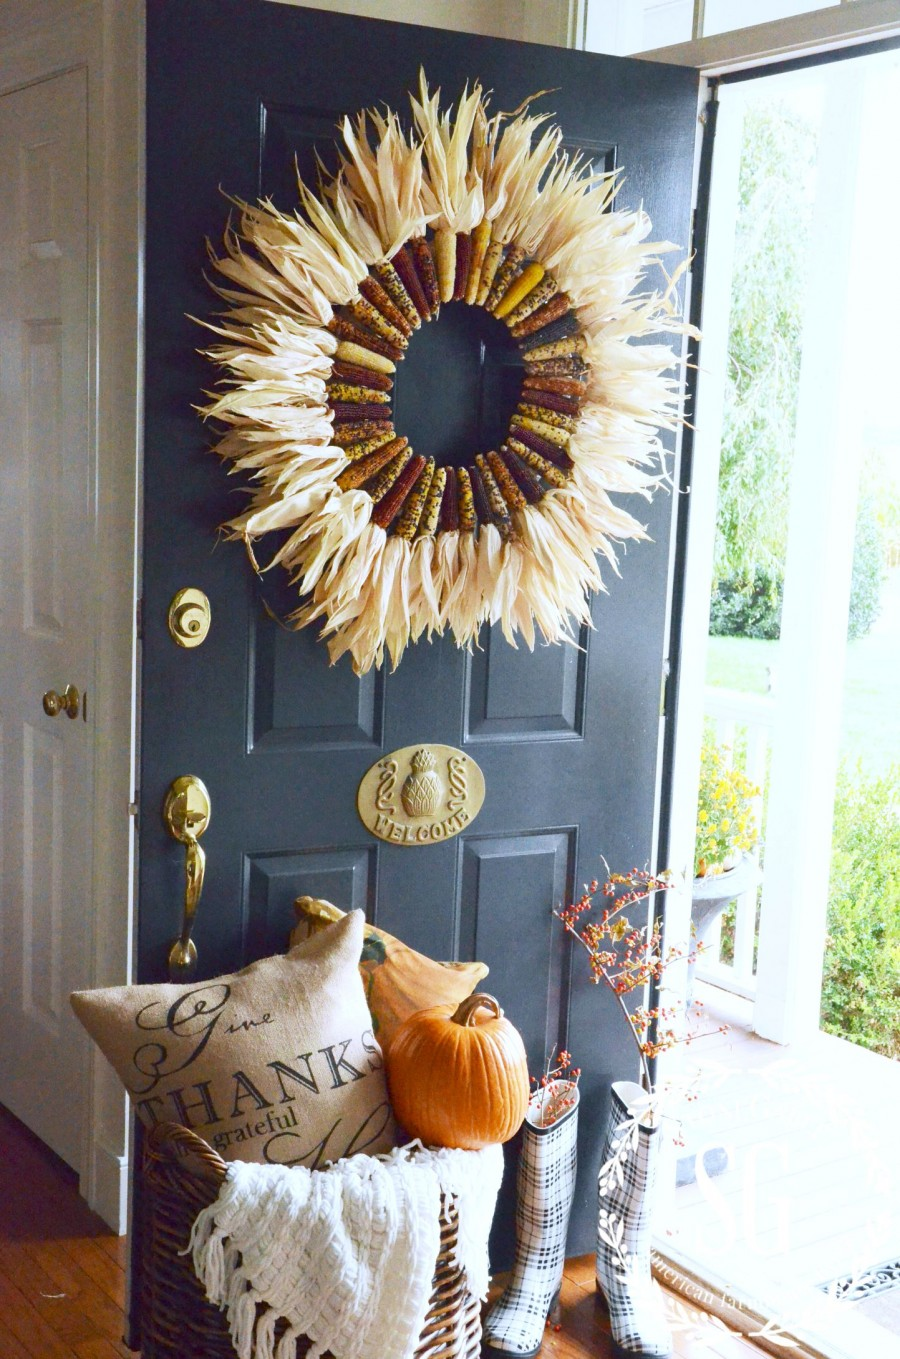 Smashing Corn Inviting Fall Front Door Dcor Ideas Digsdigs Front Door Decorative Trim Front Door Decor Etsy Corn Husks Are Materials To Make Your Fall curbed Front Door Decor